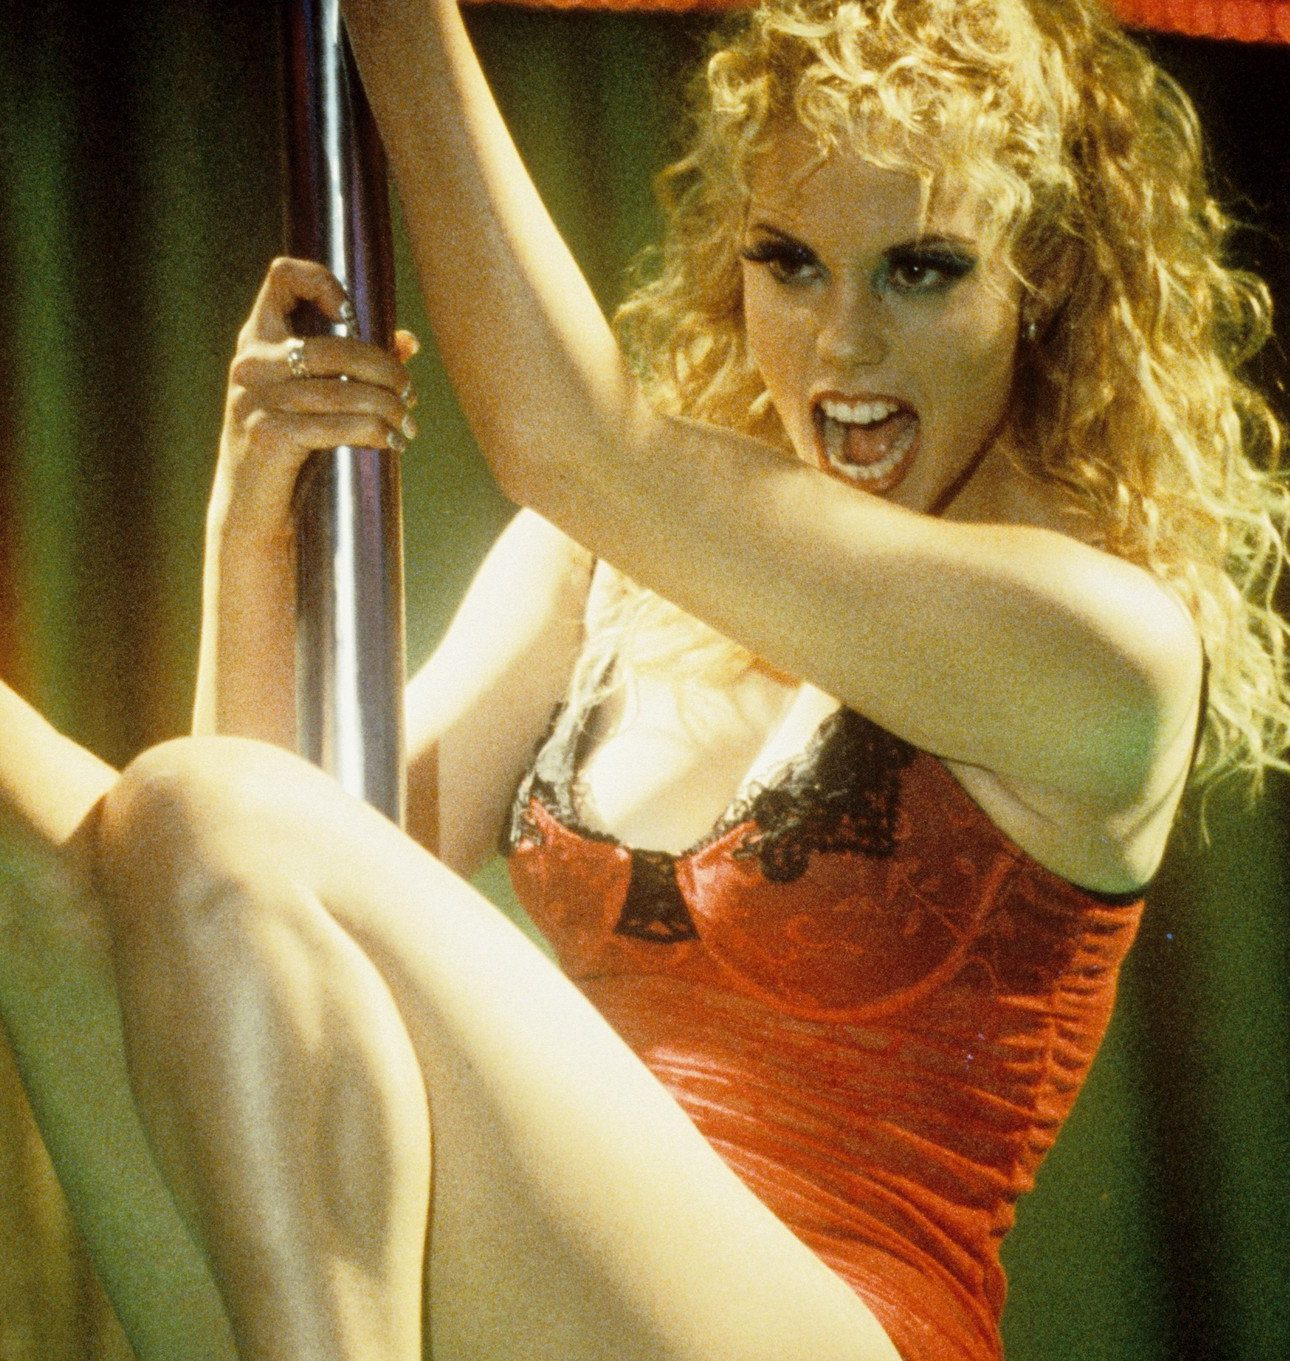 showgirls 1 e1584091073669 20 Actors Whose Careers Were Ruined By Just One Role